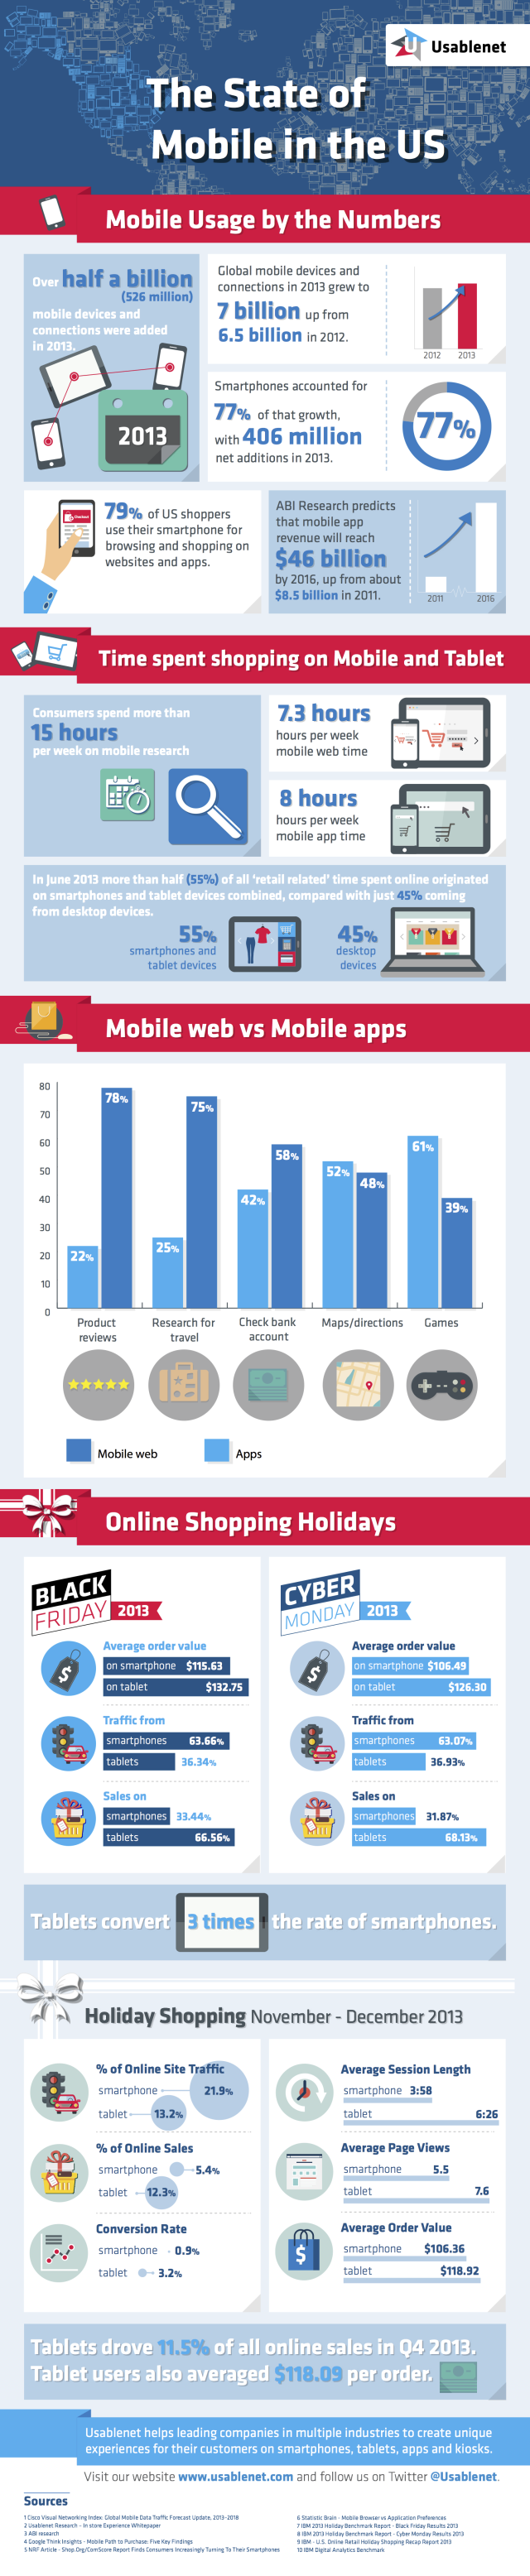 Usablenet US Mobile Infographic